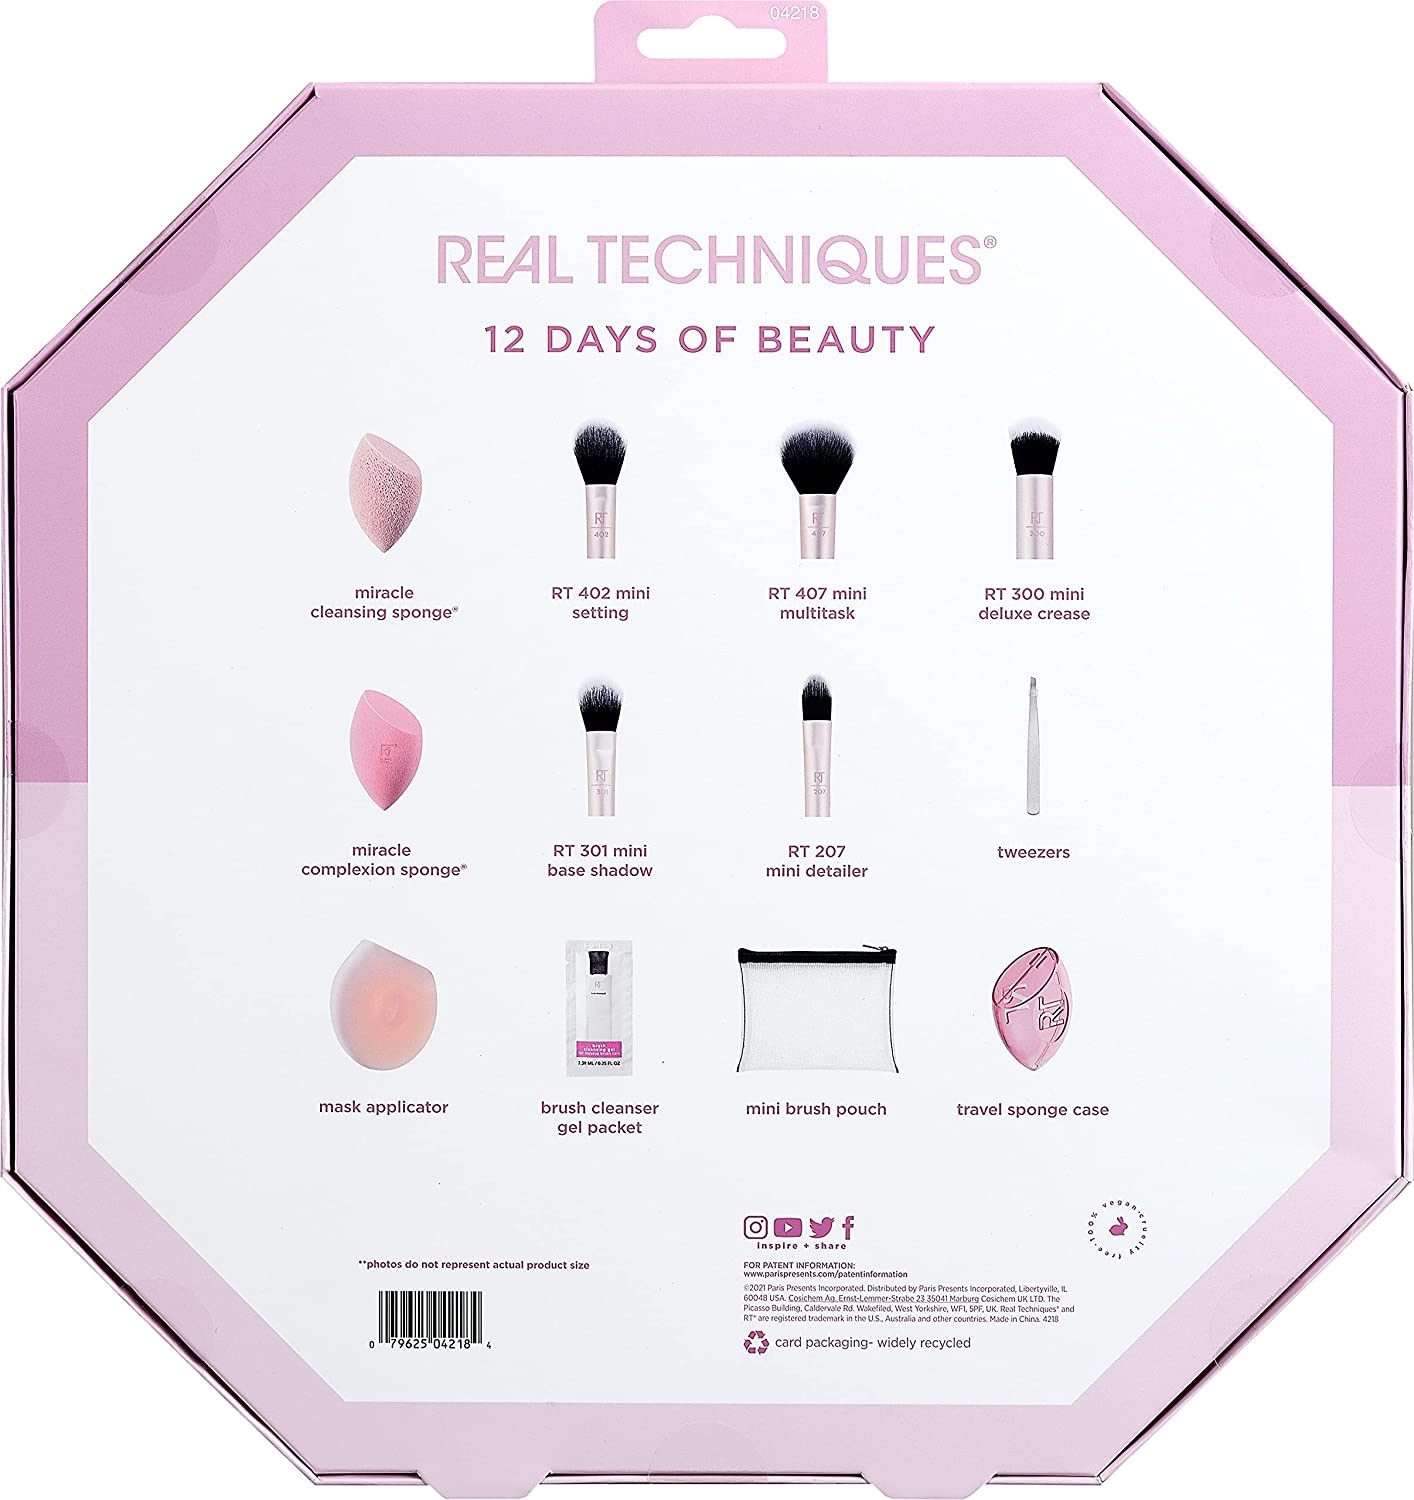 Real Techniques 12 Days Of Beauty Advent Calendar 2021 Contents Reveal!